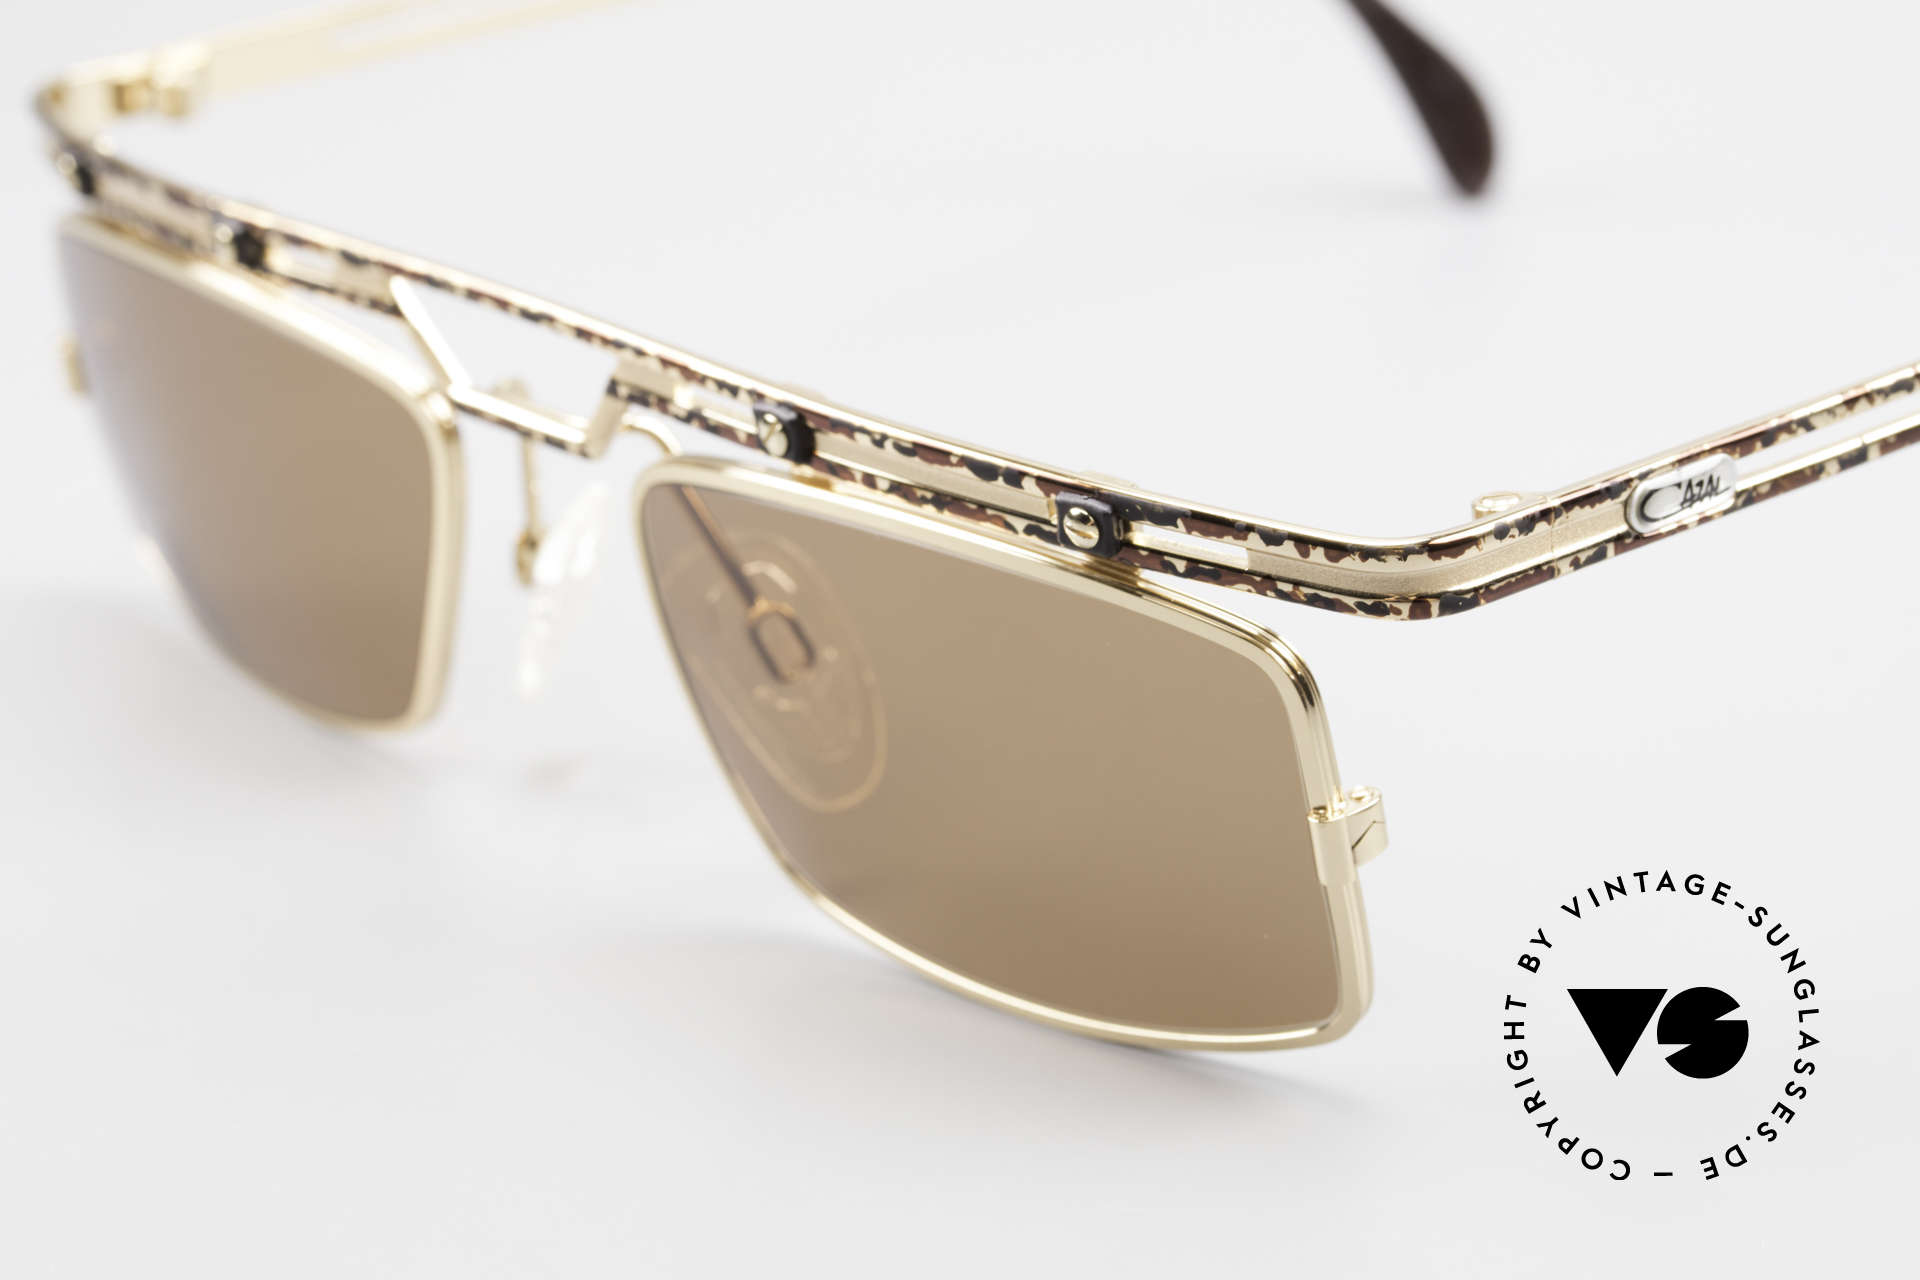 Cazal 975 Square Designer Sunglasses 90s, tangible superior crafting quality (made in Germany), Made for Men